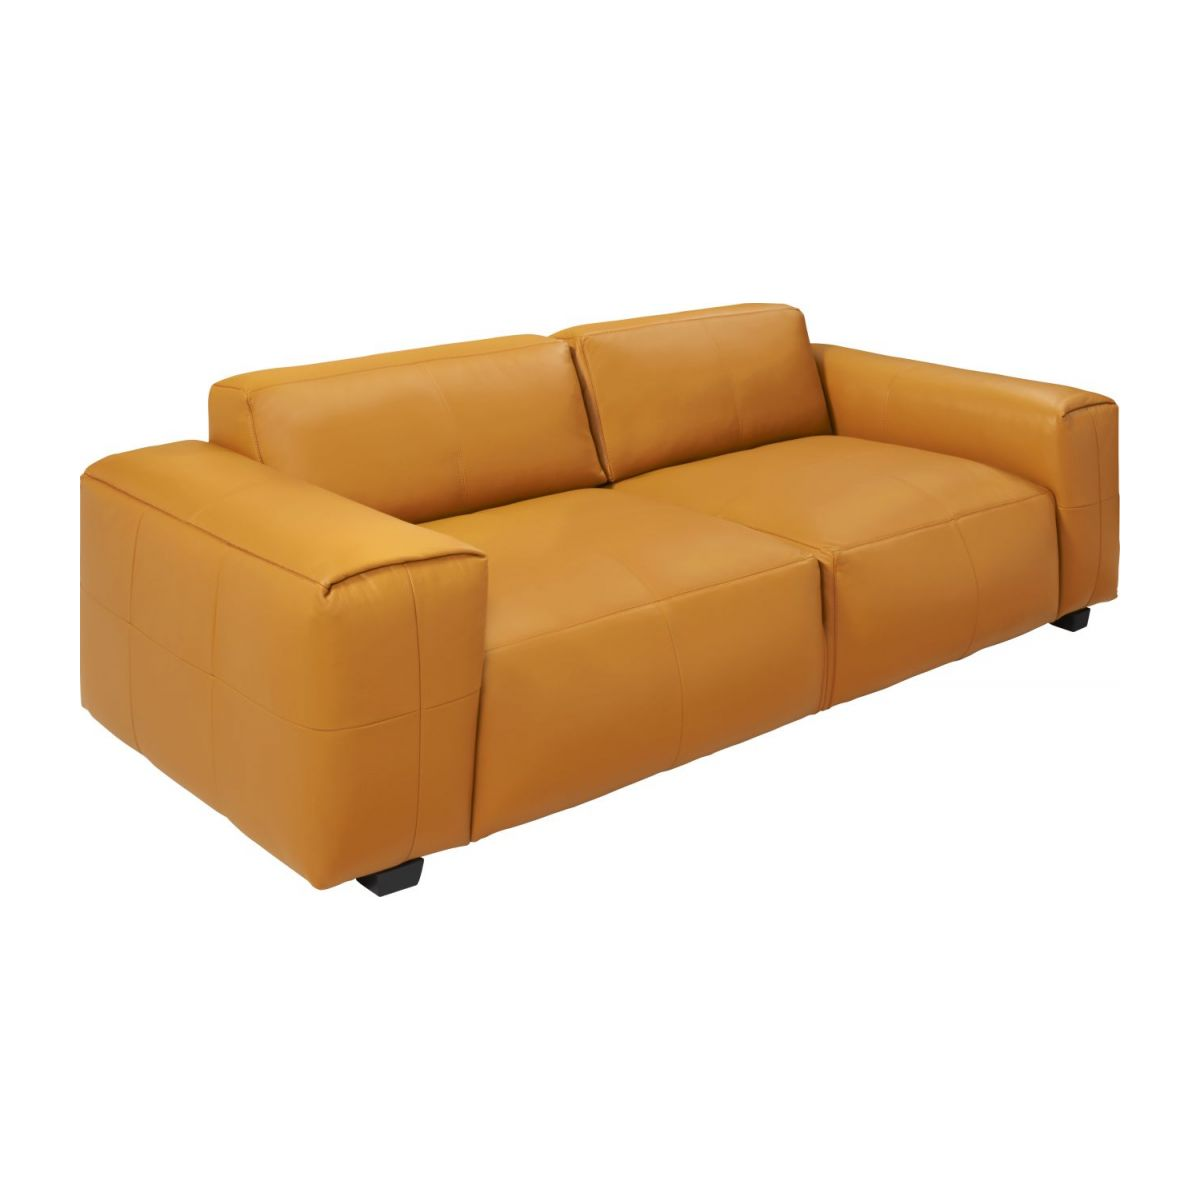 3 seater sofa in Savoy semi-aniline leather, cognac n°1